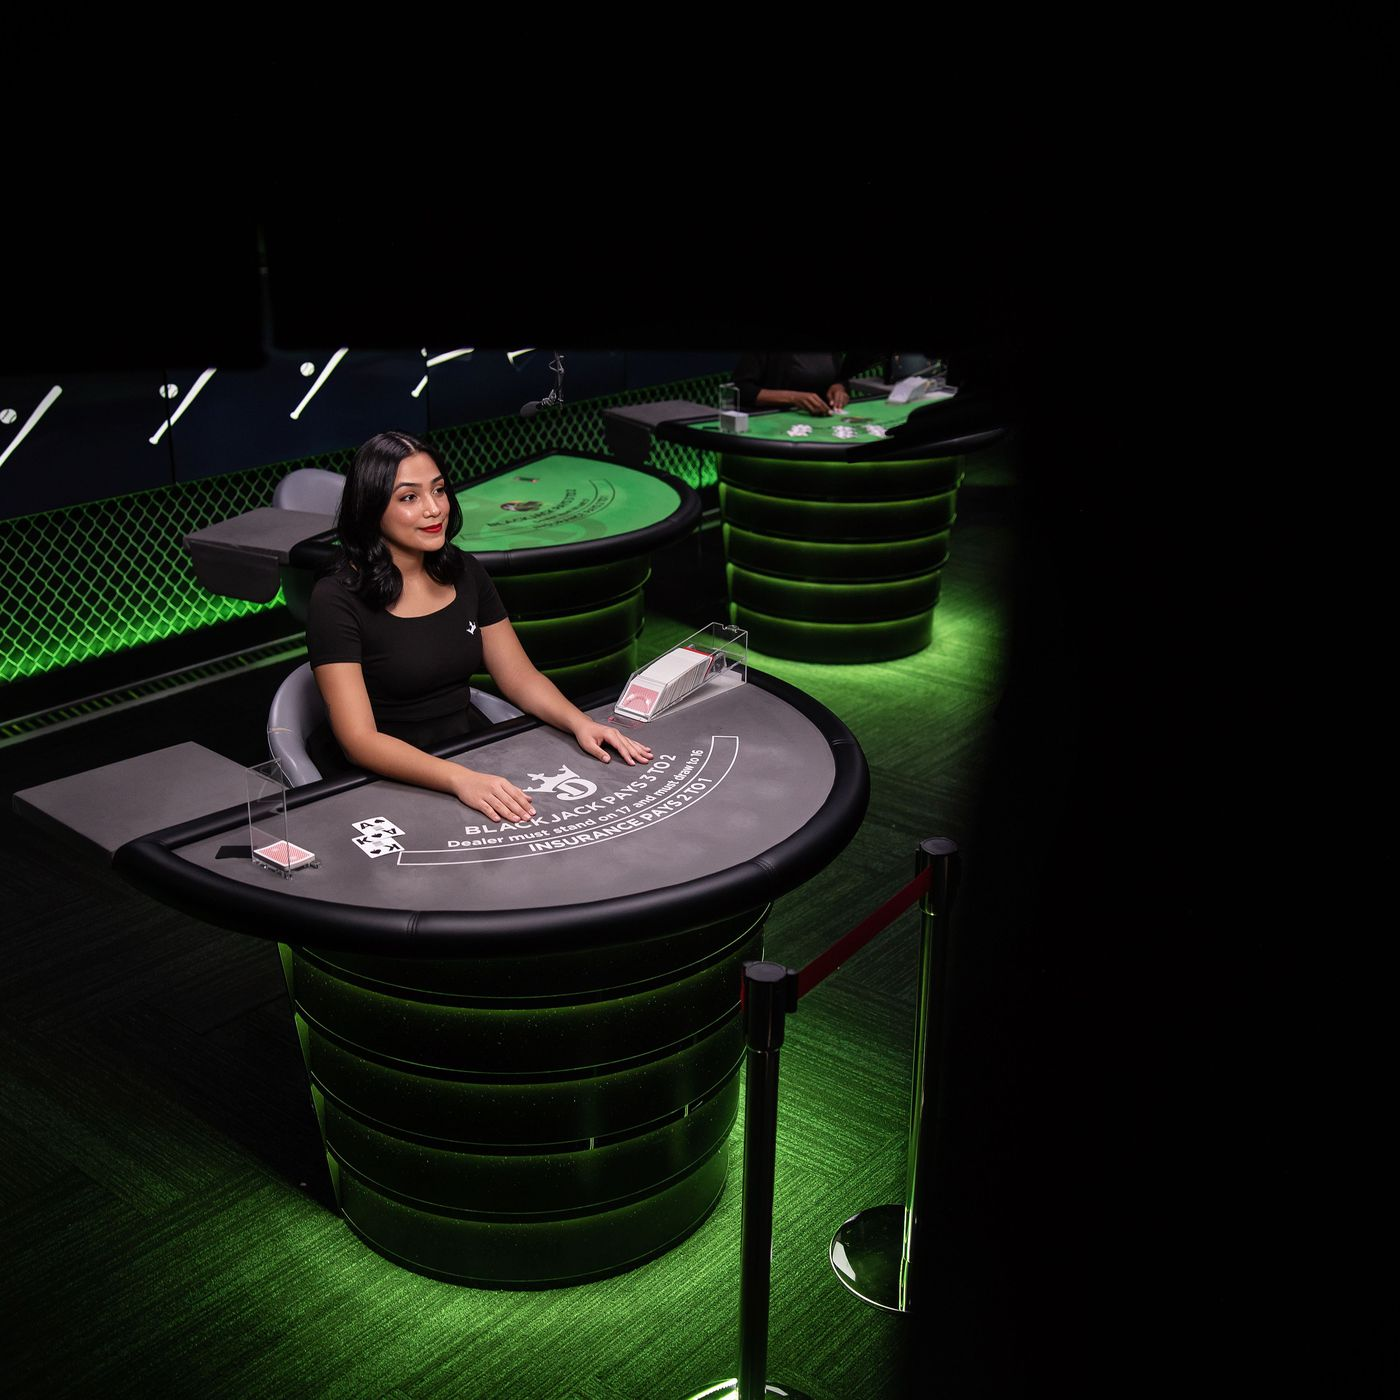 Draftkings Casino News Live Dealer Games Now Available In Pennsylvania Draftkings Nation